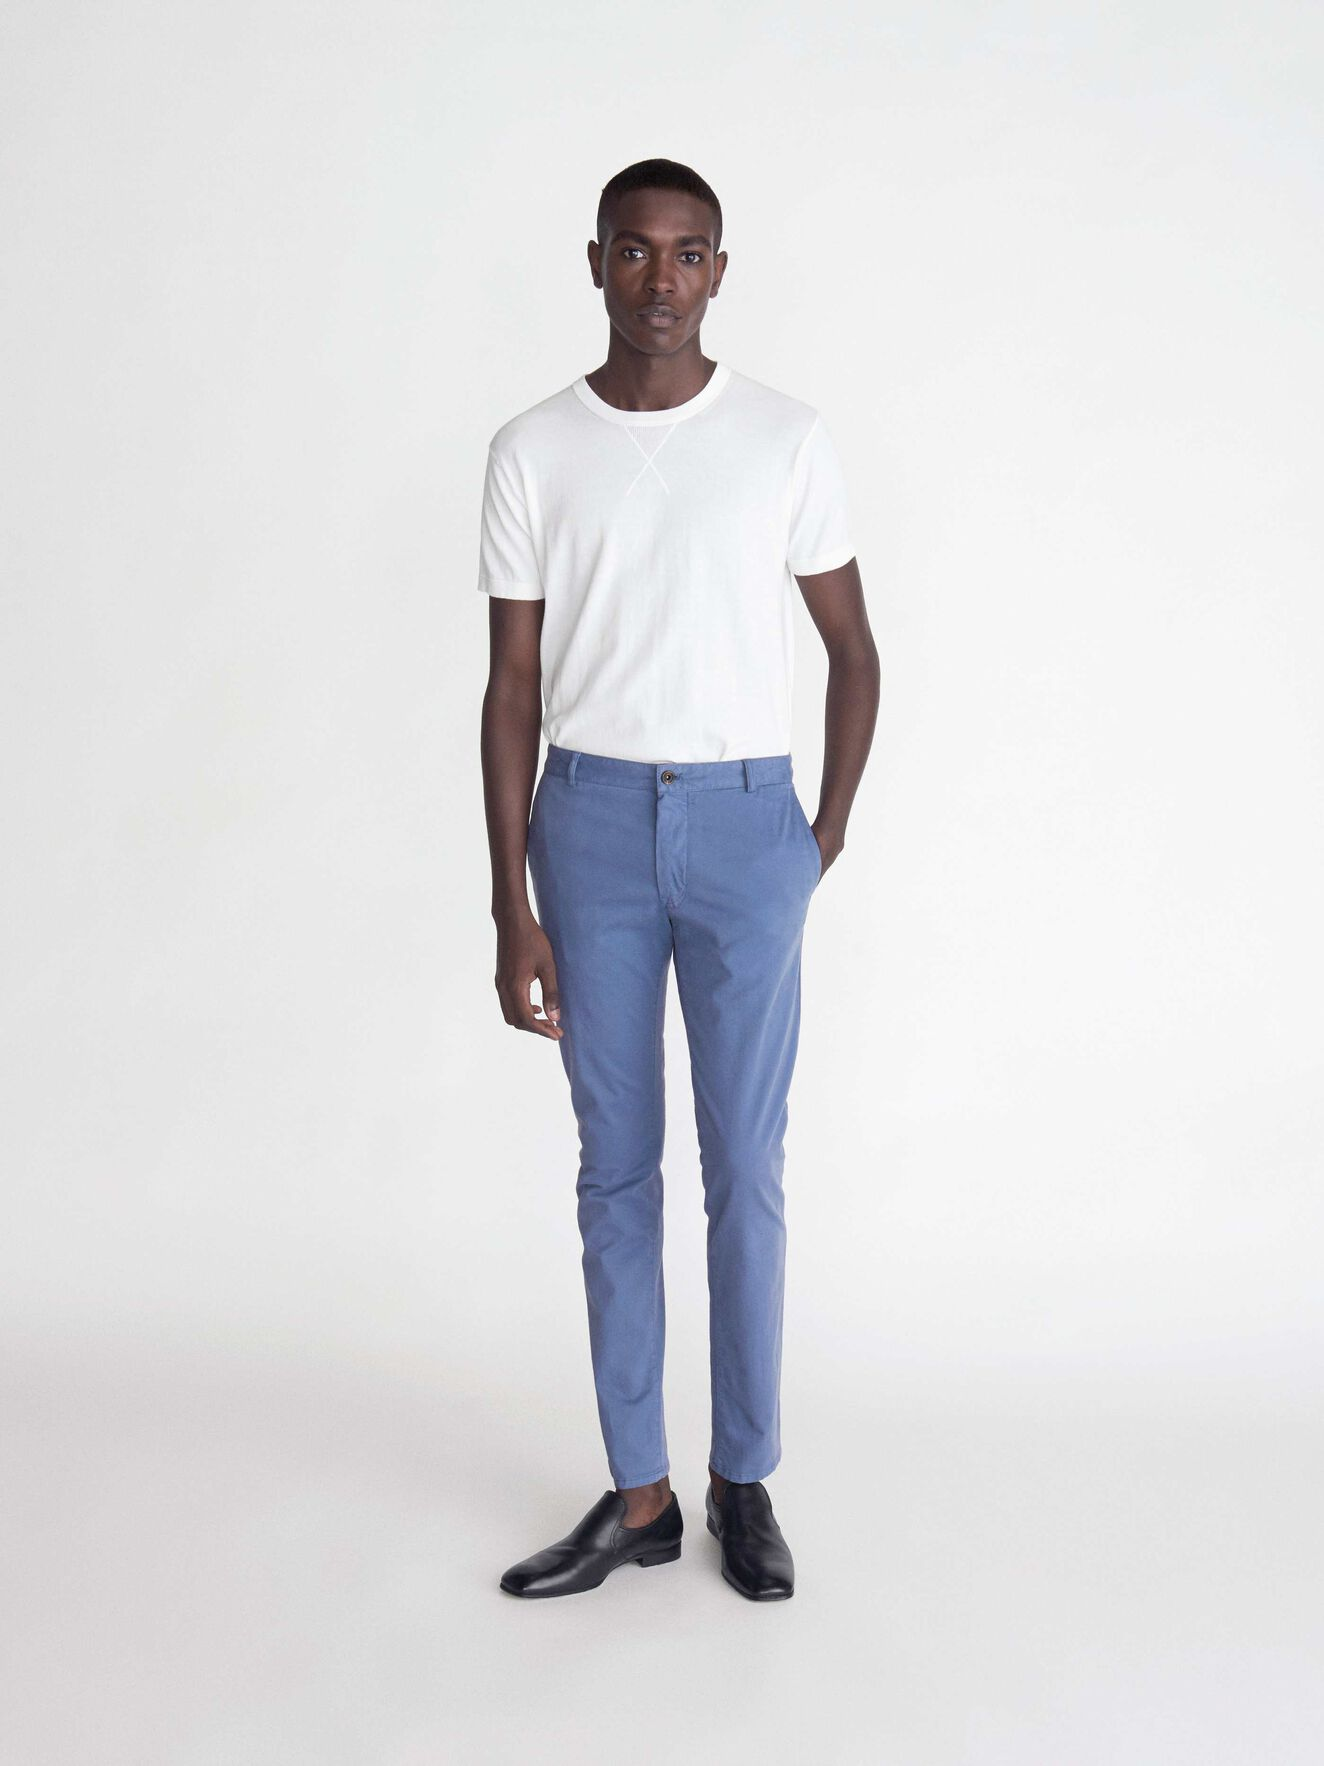 Transit 4 Trousers in Soft blue from Tiger of Sweden